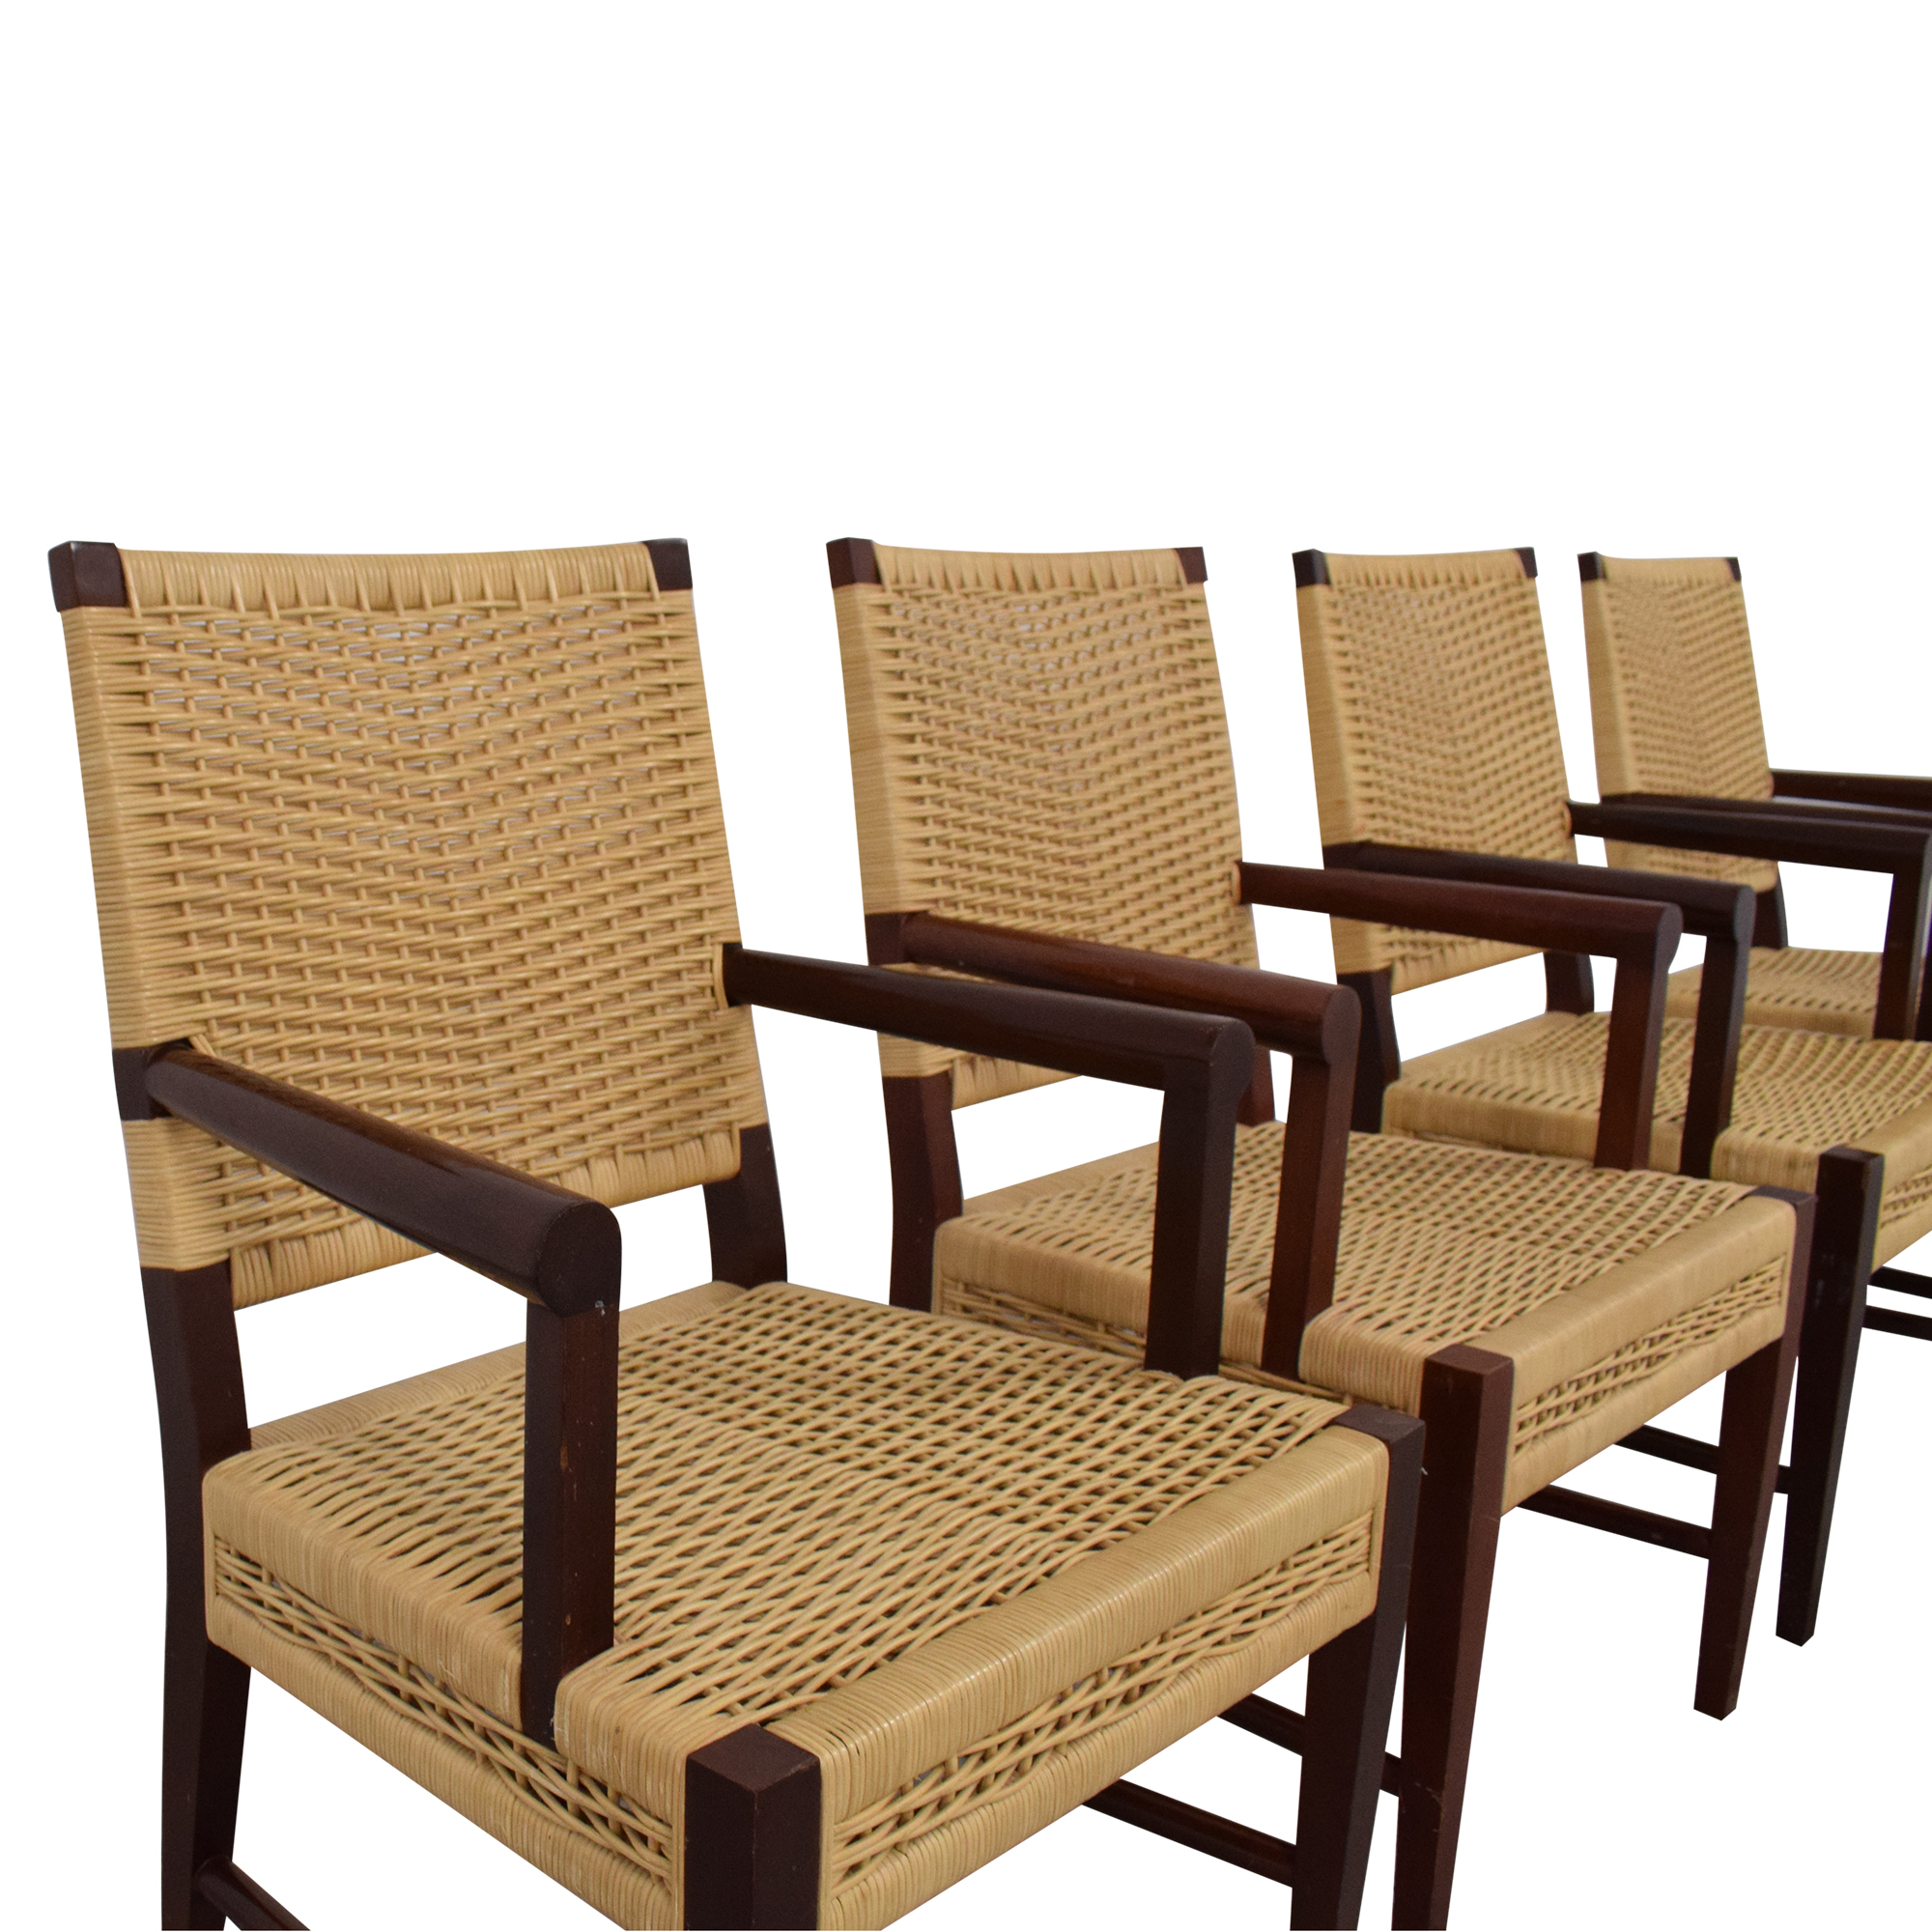 Donghia Donghia Dining Chairs in Merbau Wood with Raffia Weaving Chairs